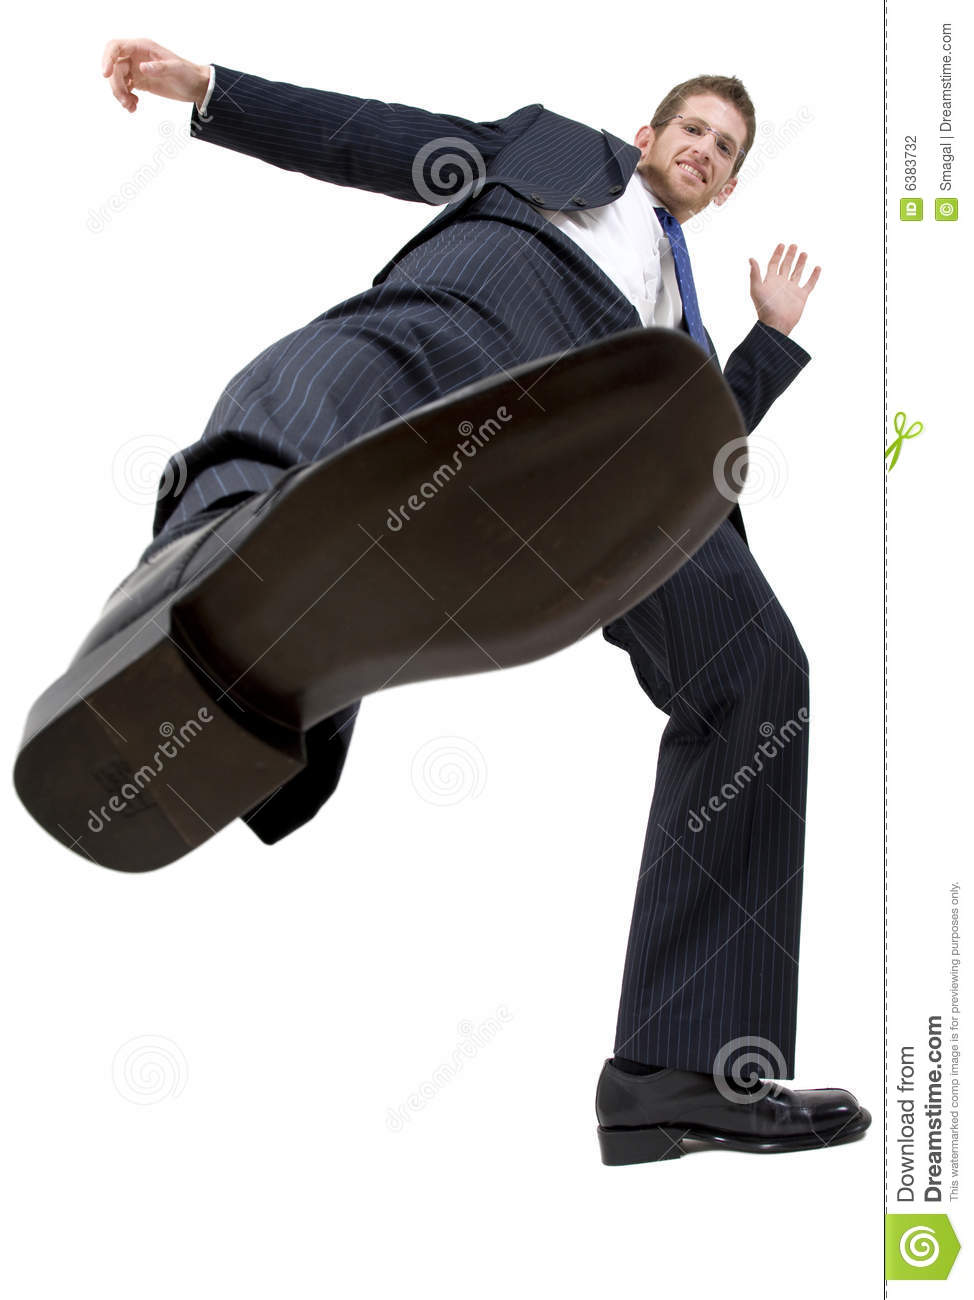 Businessman kicking